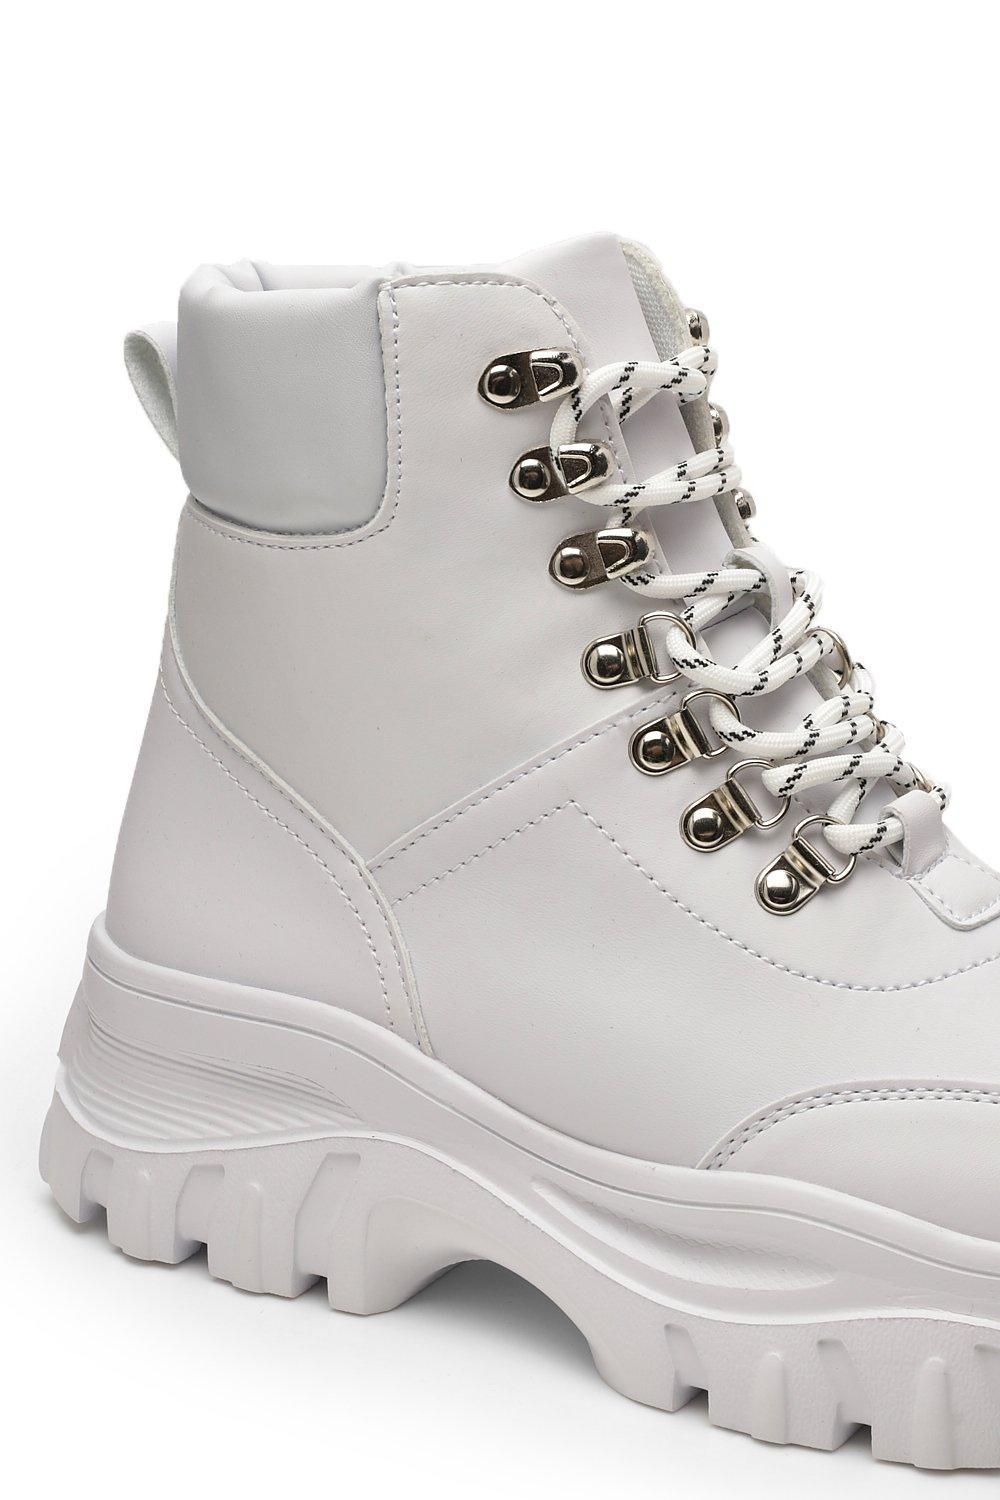 Boohoo Chunky Cleated Hiker Boots in